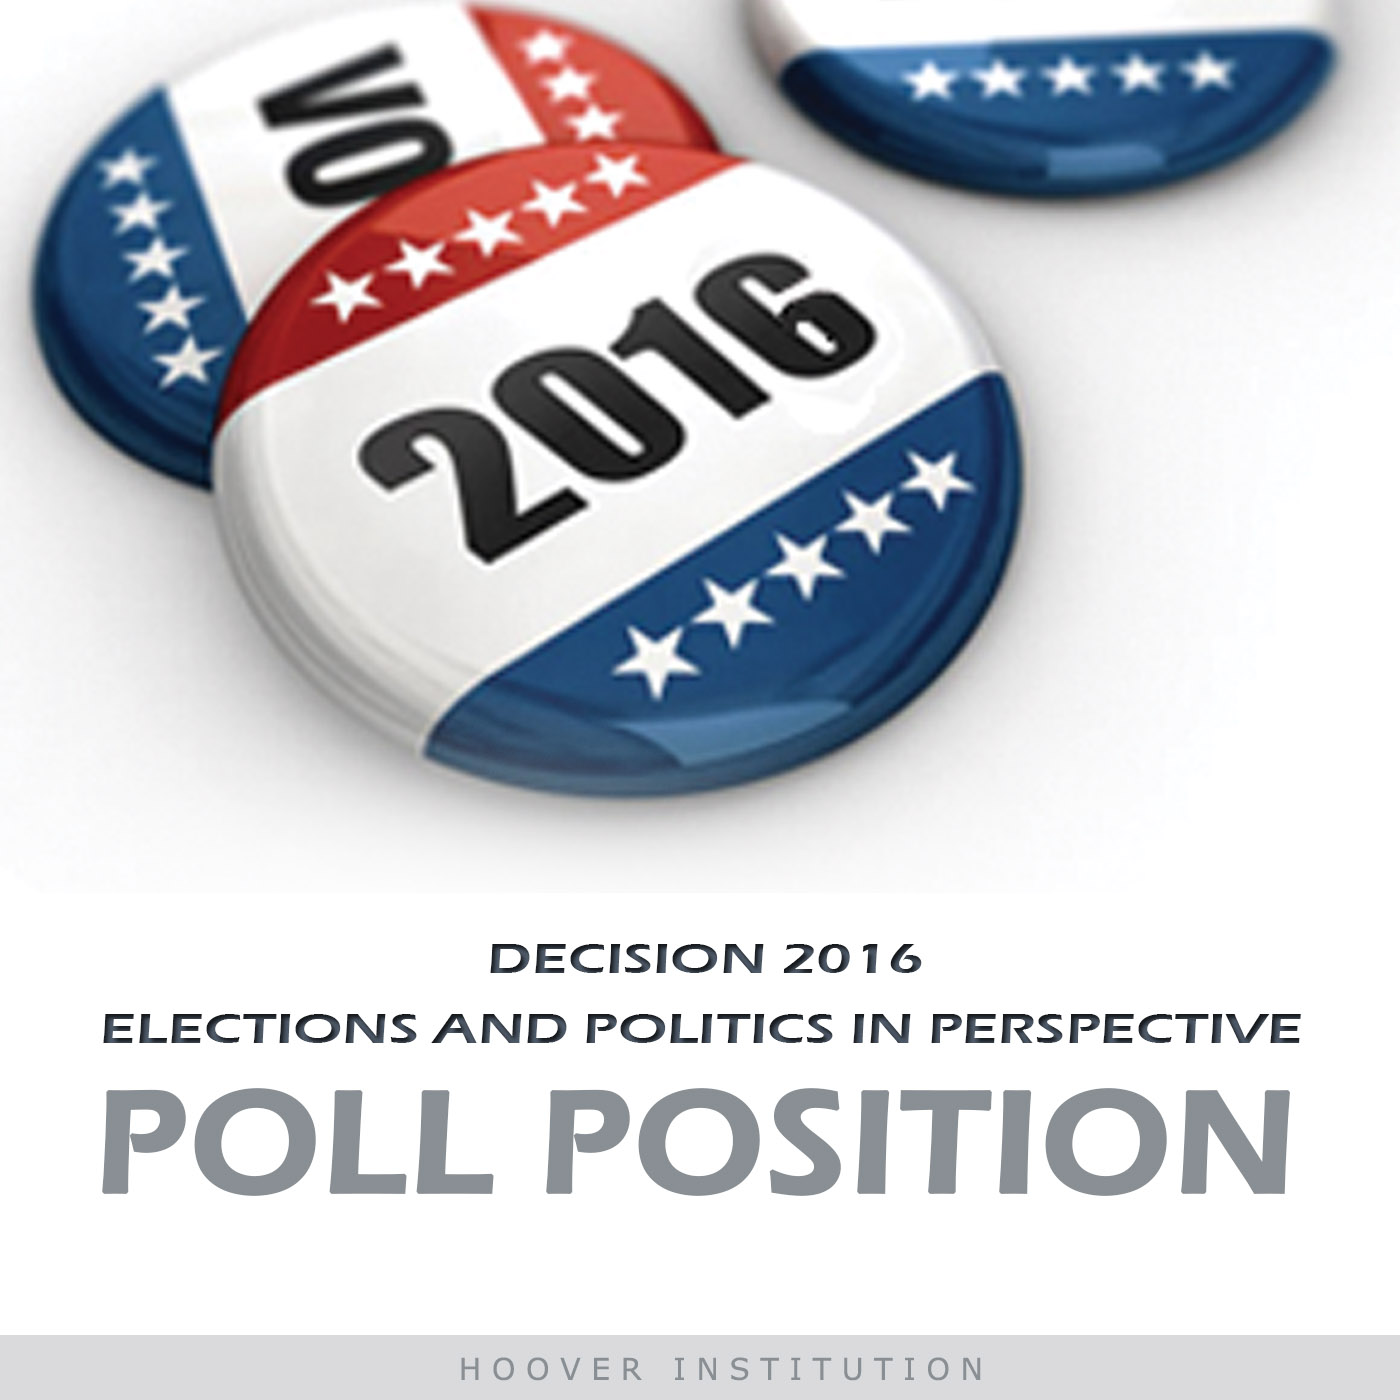 In Perspective: Decision 2016 - Poll Position